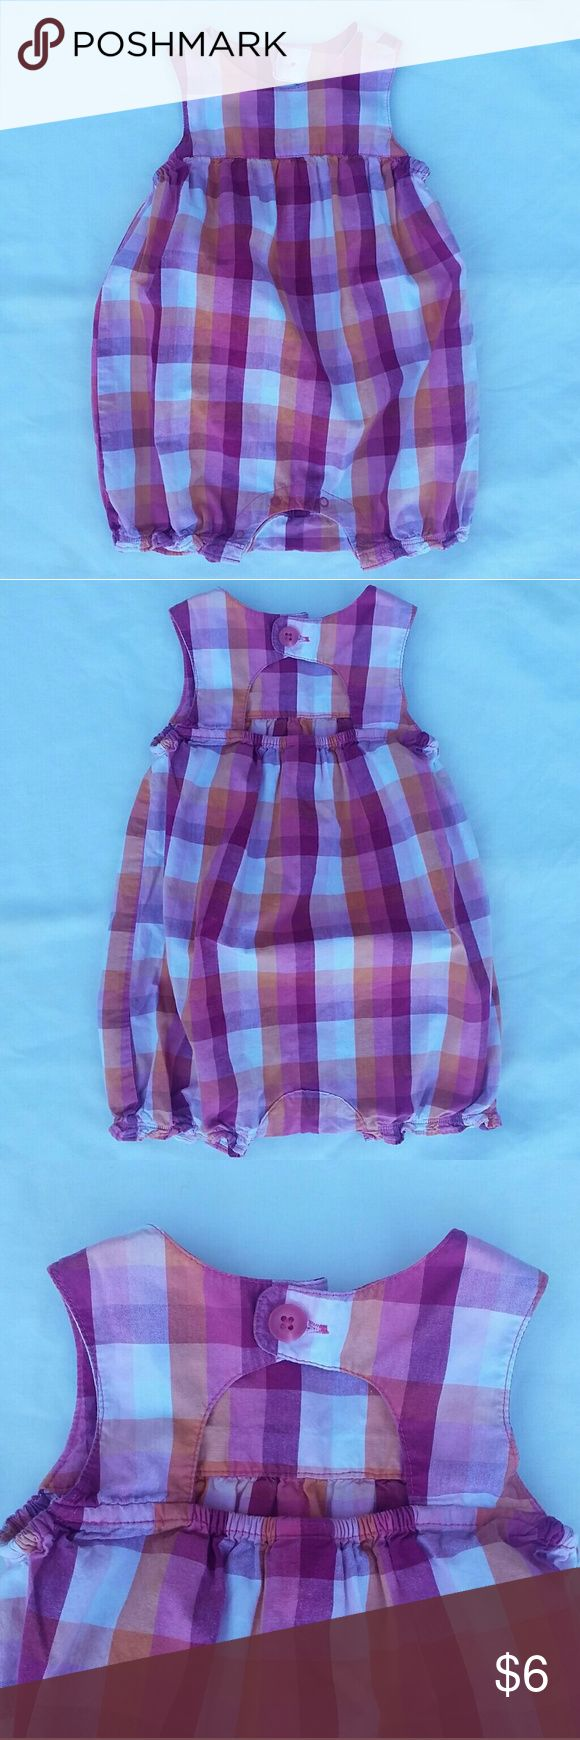 Plaid baby romper Sweet little pink, orange, and white plaid baby romper/jumper. Keyhole detail with a button on the back. Cute summer picnic outfit for your 6-12 month old. Great condition! Old Navy One Pieces Bodysuits